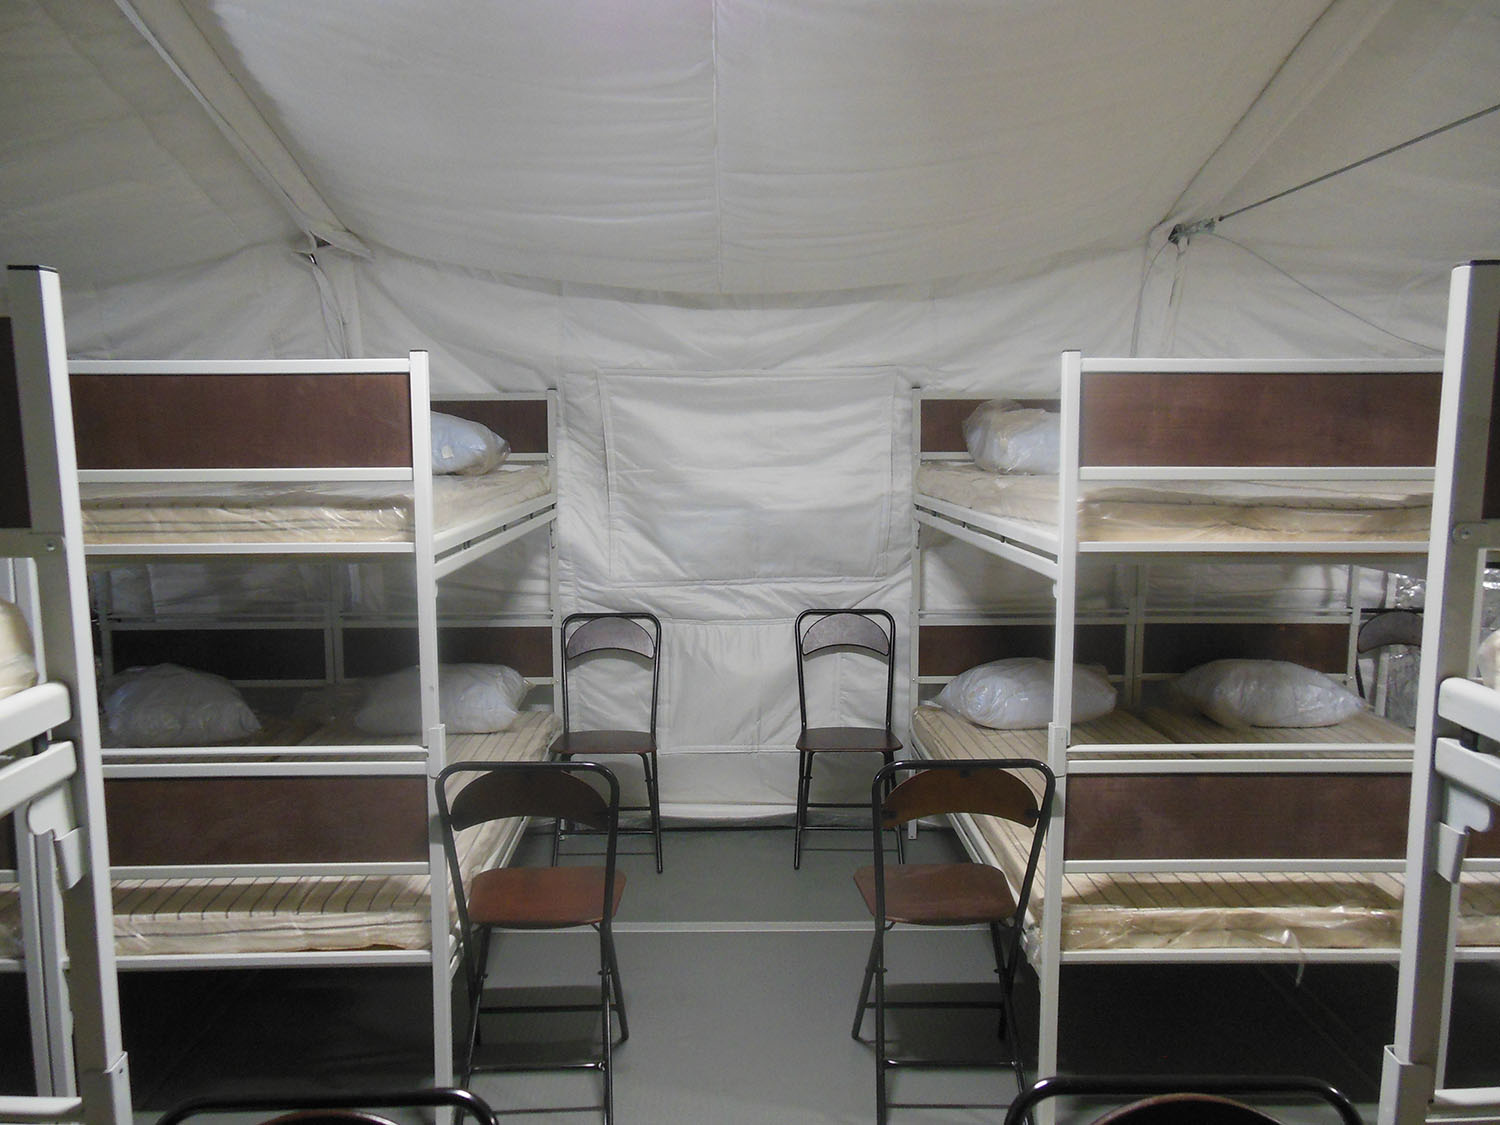 A military personnel accommodation tent (32-seat)